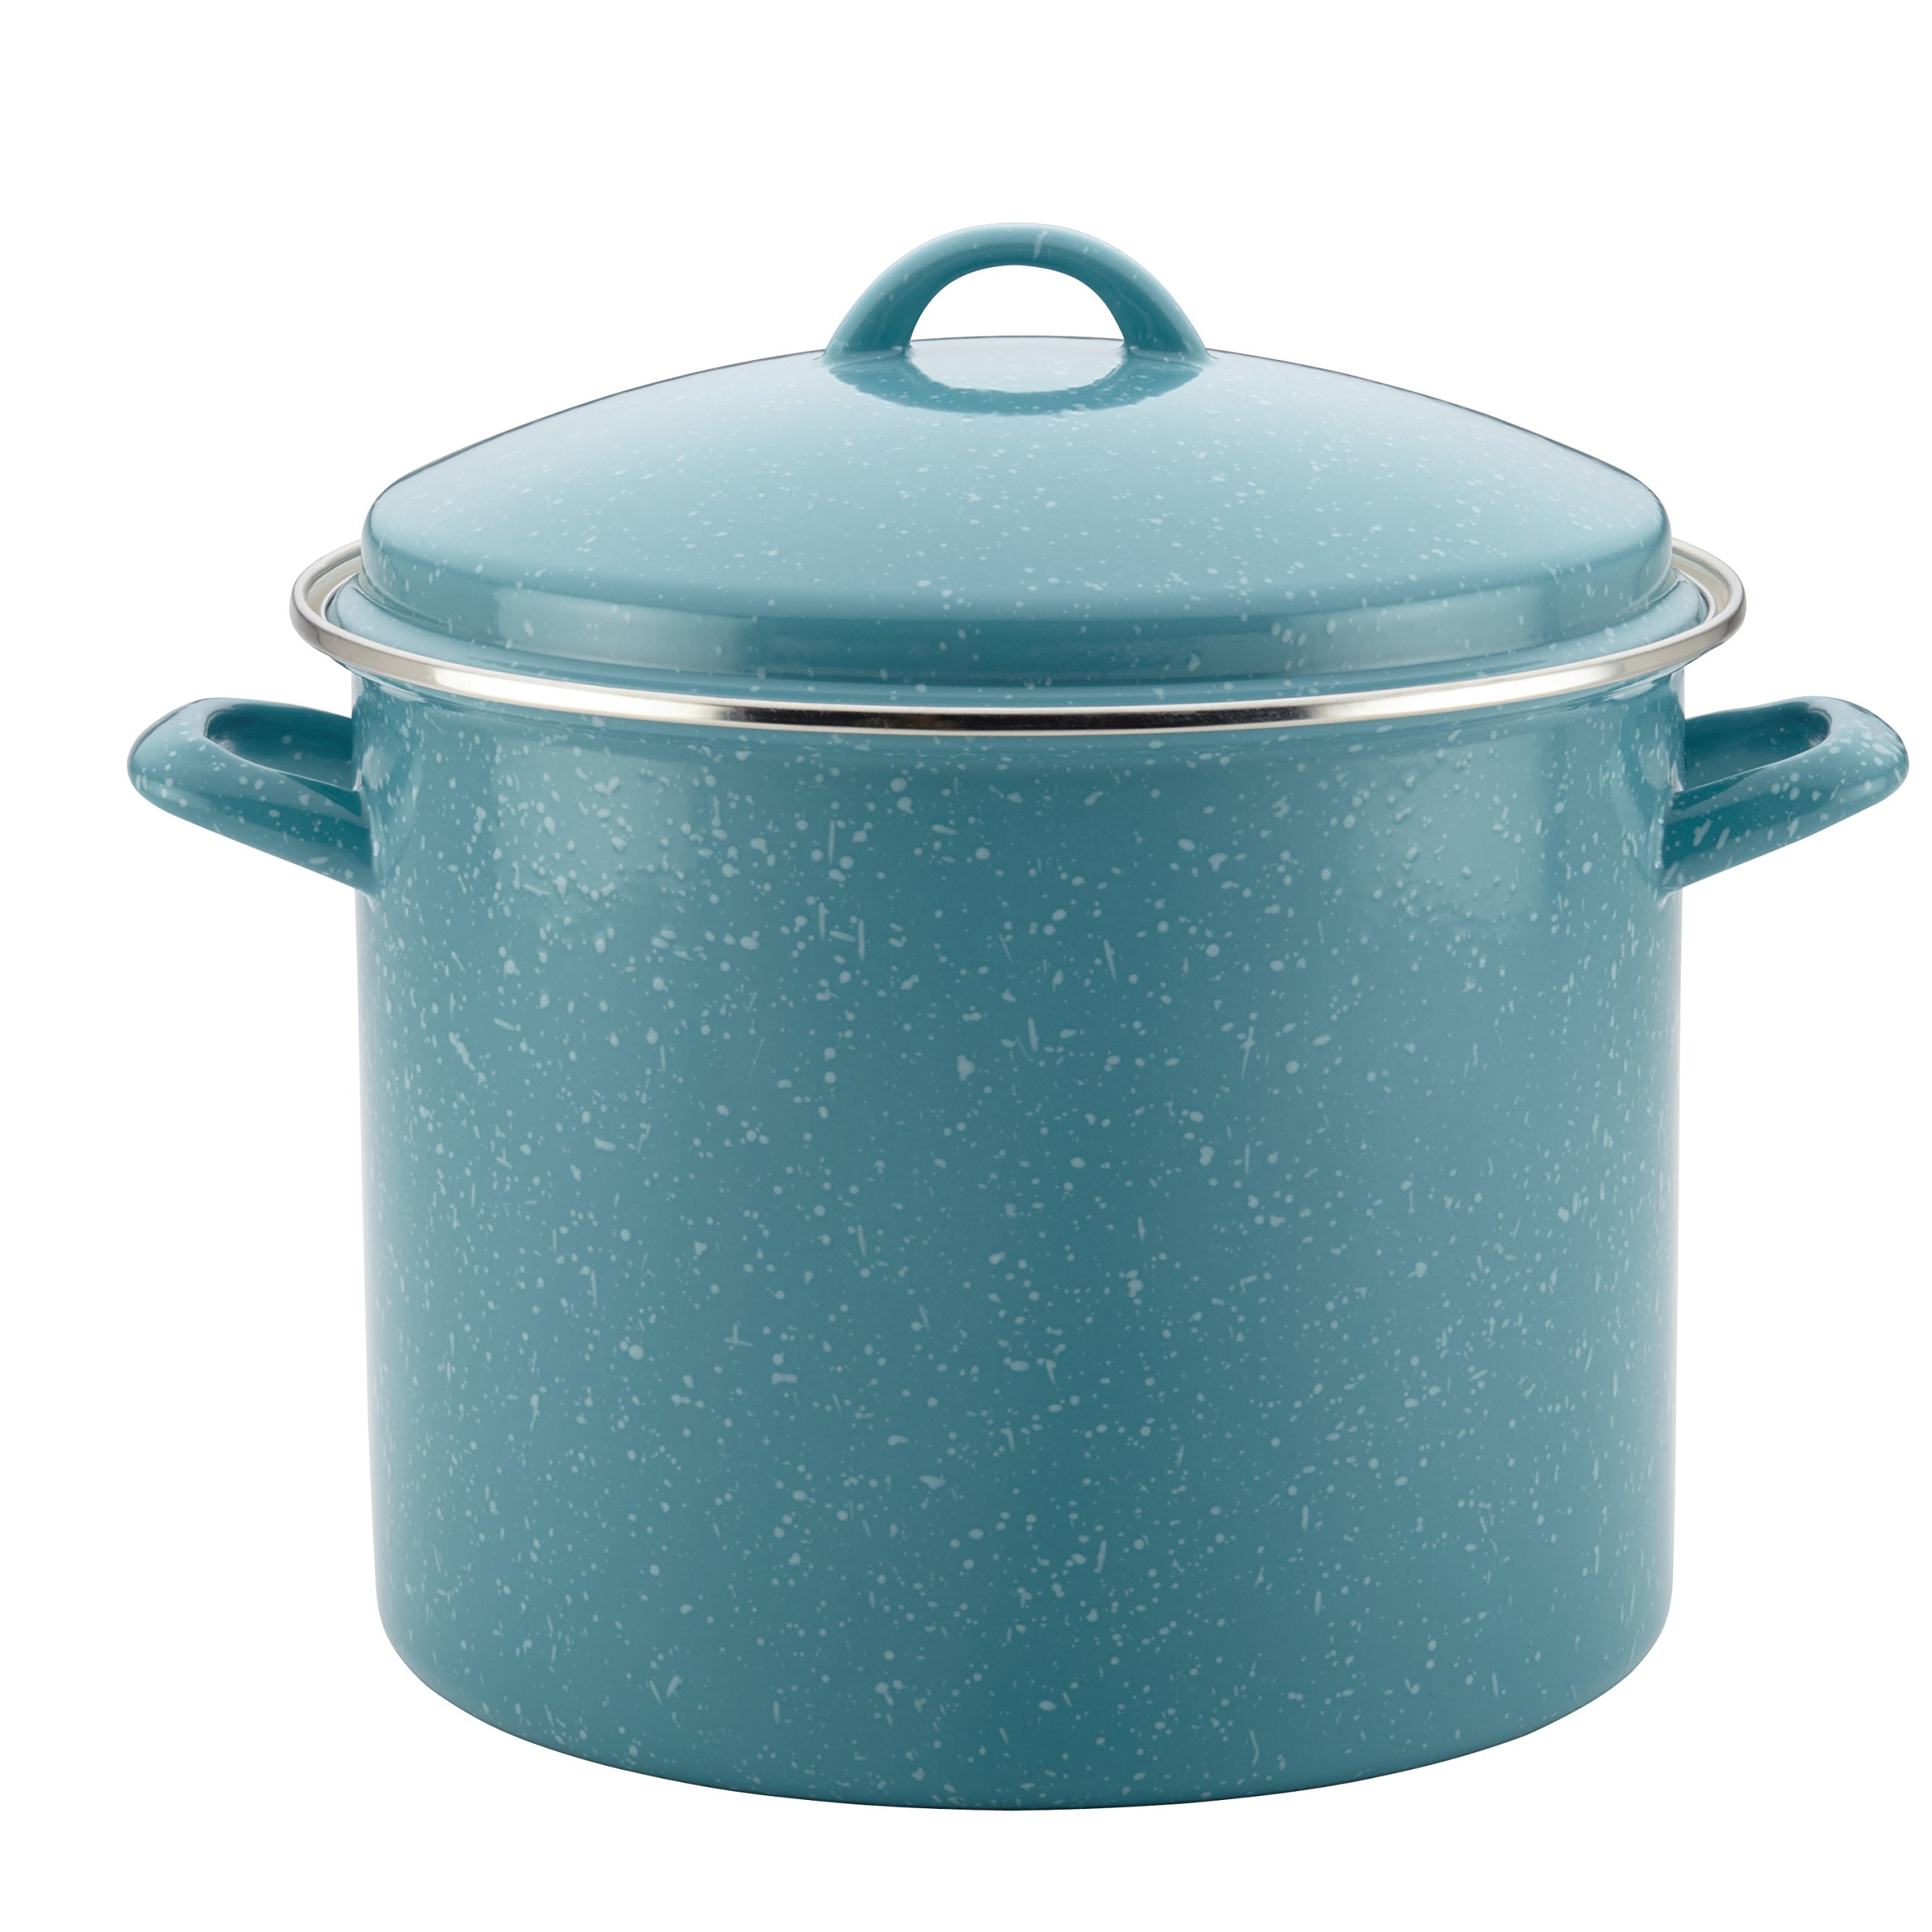 Paula Deen Enamel on Steel Covered Stockpot, 12 quart, Gulf Blue Speckle